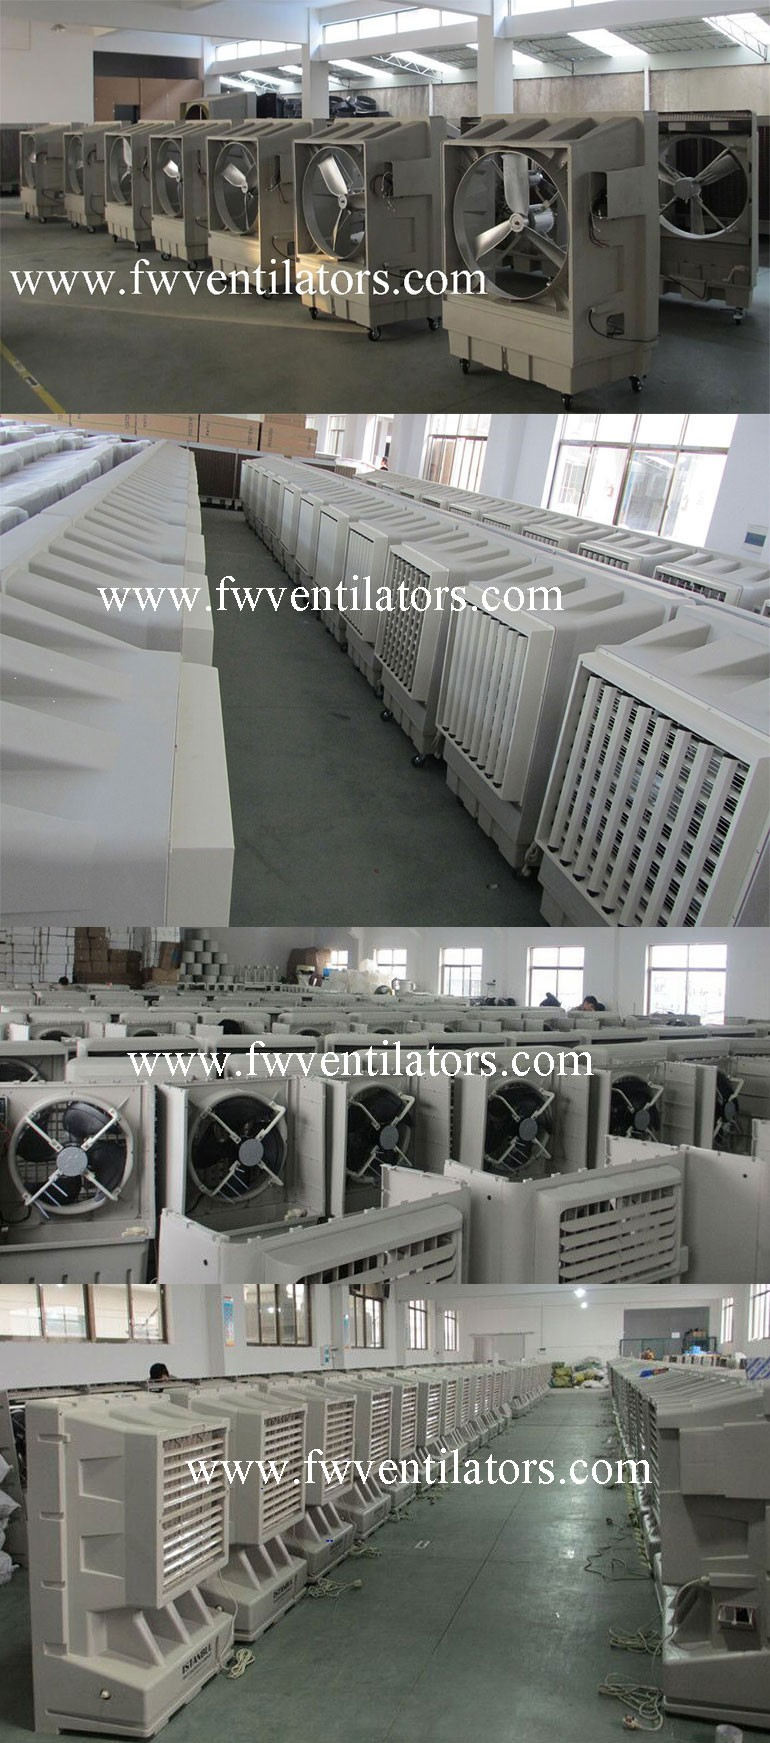 workshops of industrial portable evaporative air coolers.jpg